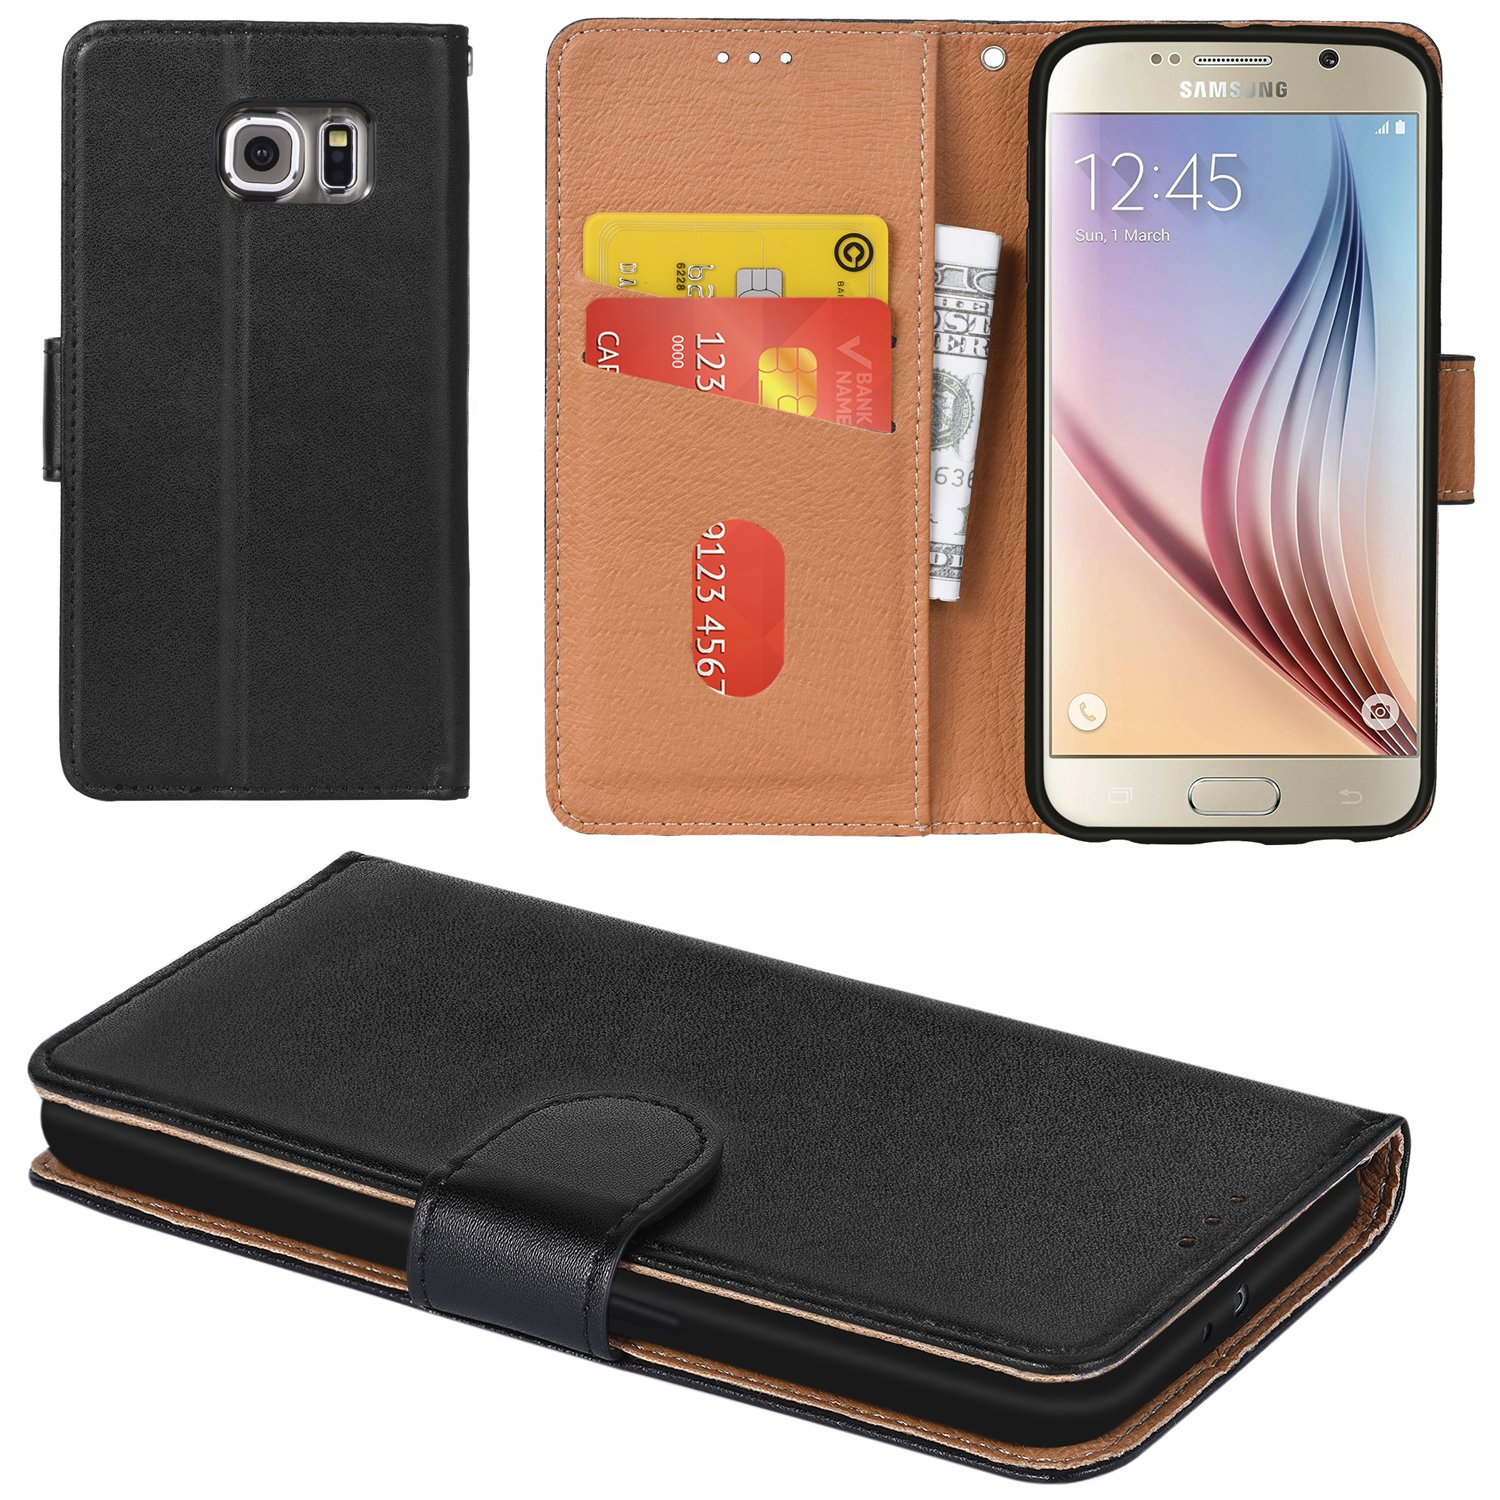 Galaxy S6 Case, Aicoco Flip Cover Leather, Phone Wallet Case for Samsung Galaxy S6 - Black by Aicoco